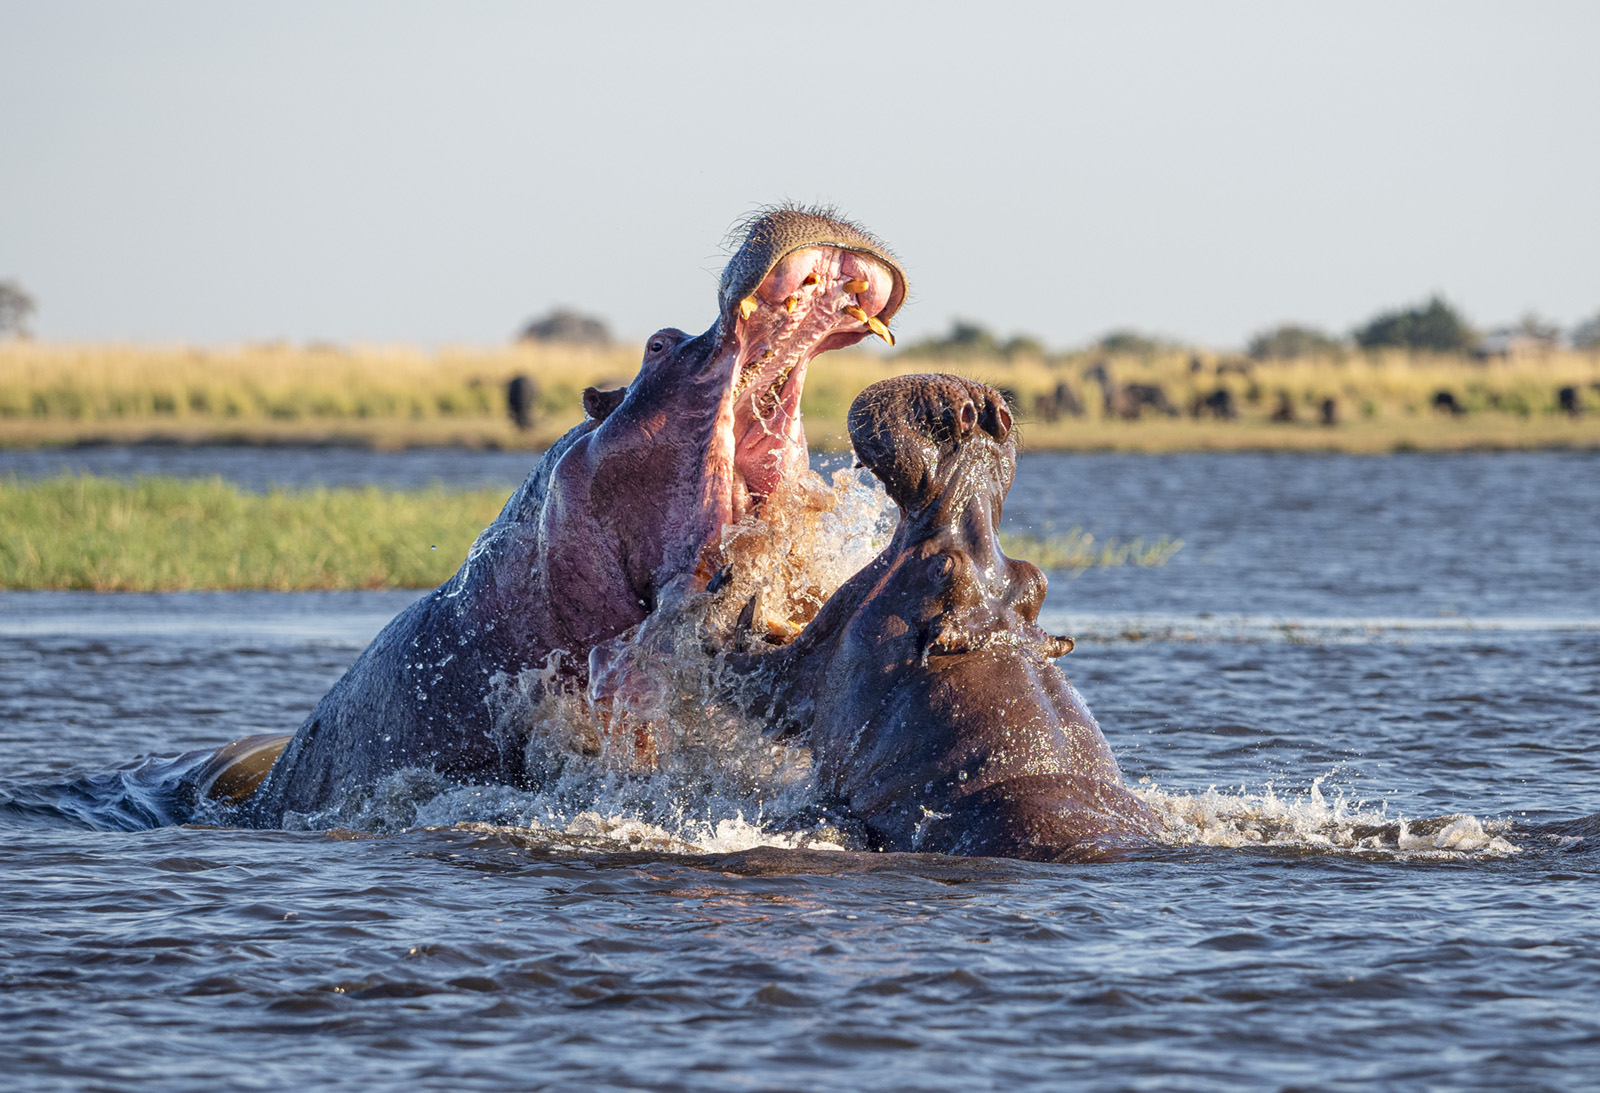 POSTPONED – 2020 Chobe National Park, Botswana – Land and Water May 30 – June 4